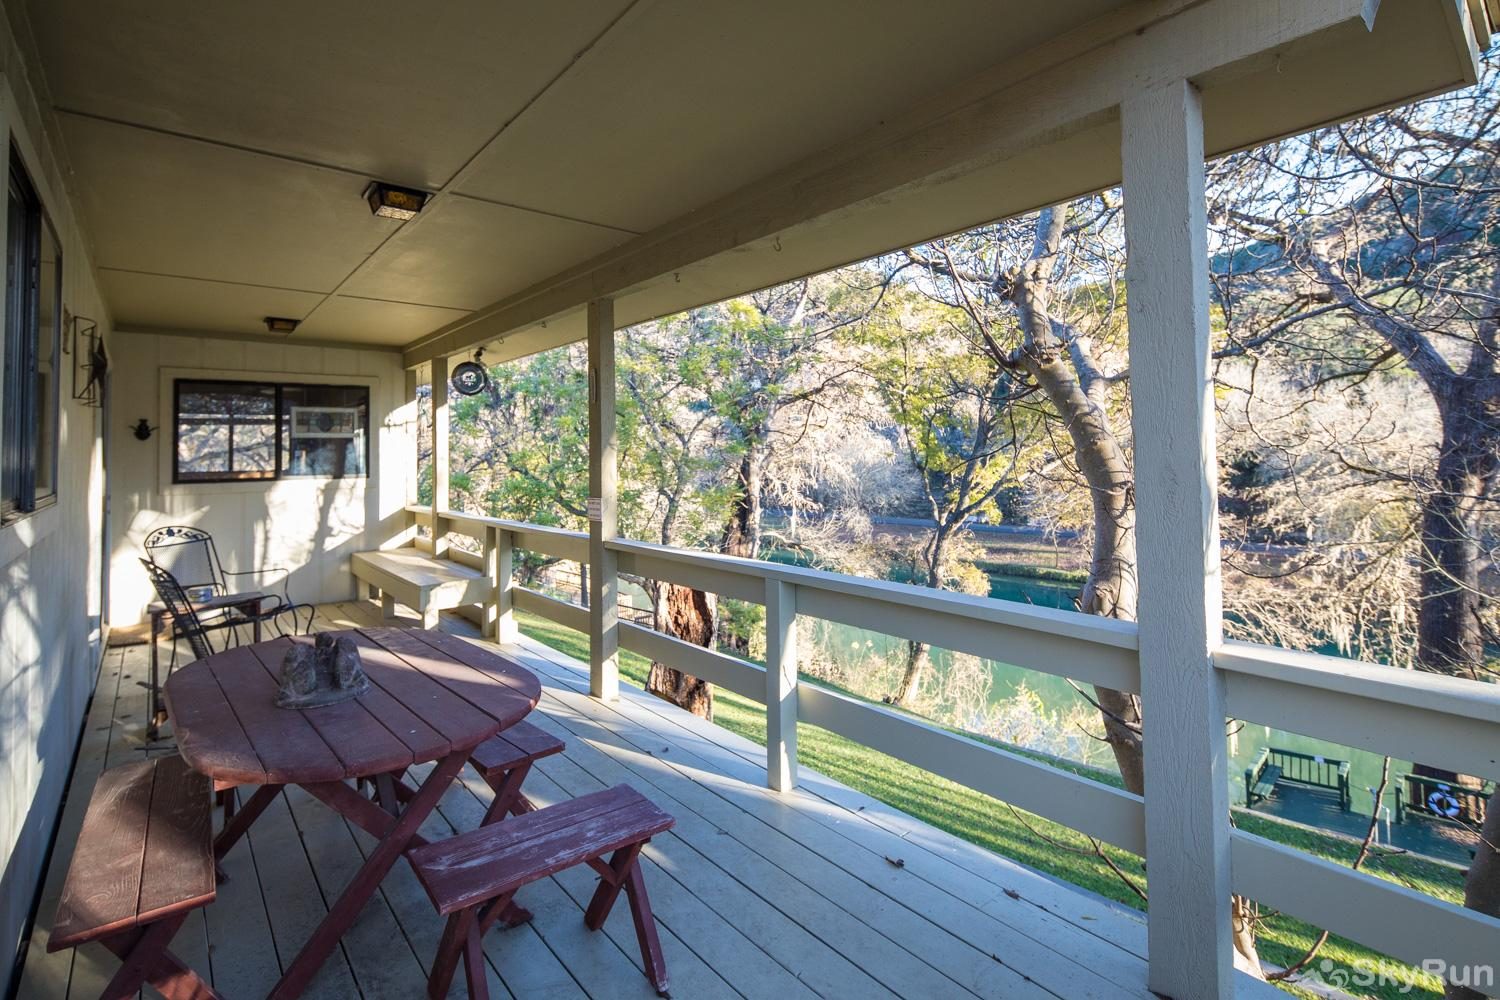 MAC'S PLACE Beautiful Covered Deck Overlooking the Guadalupe River